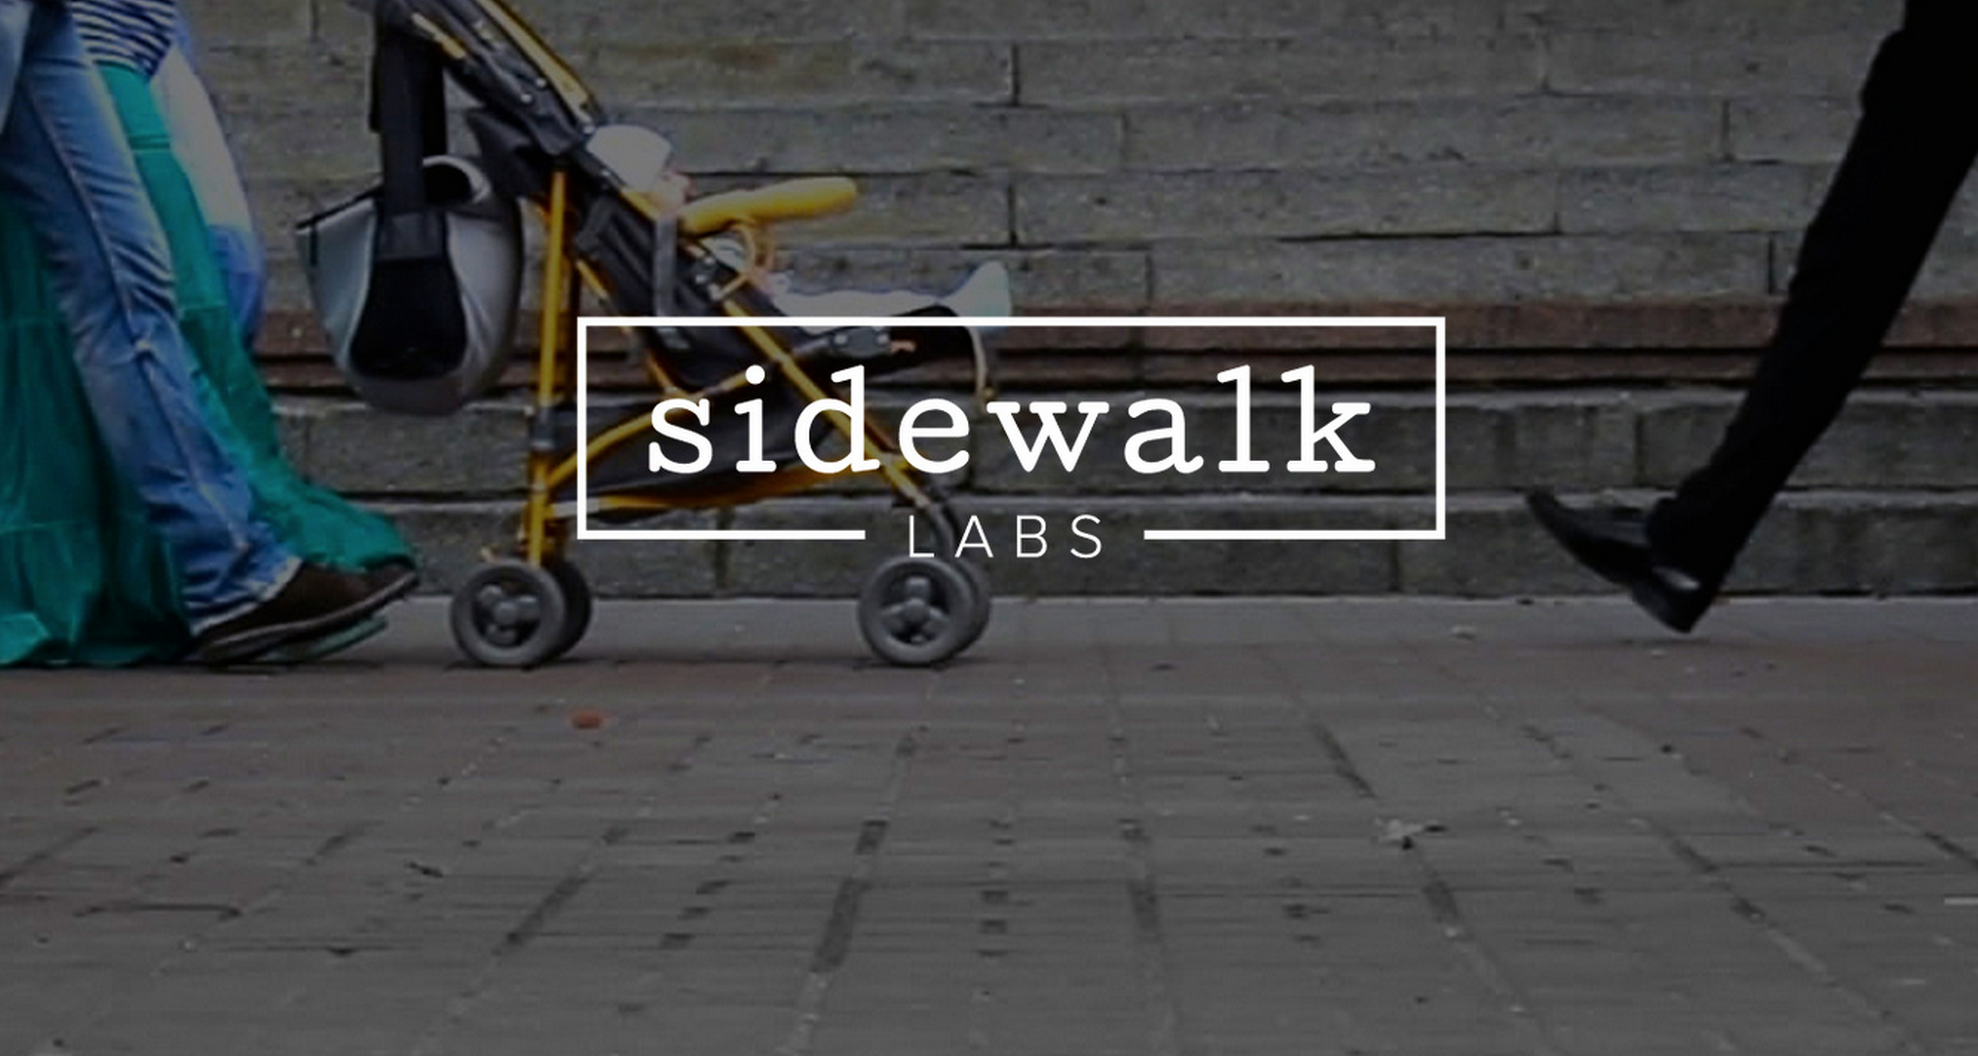 Google's Sidewalk Labs takes over plans to line NYC streets with free Wi-Fi hubs